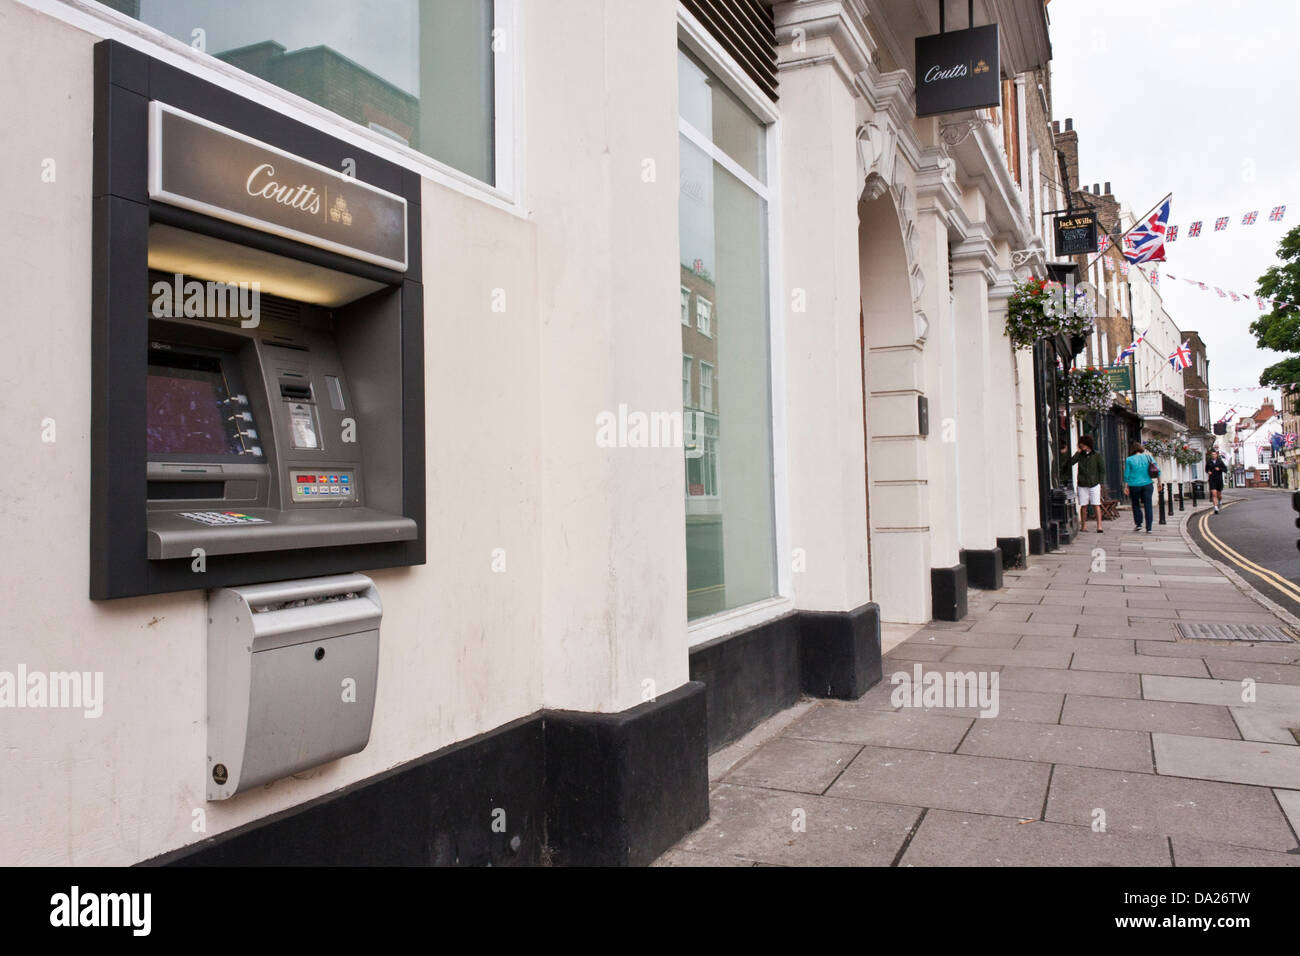 Cash Pool Automaten Atm Services Stockfotos And Atm Services Bilder Alamy